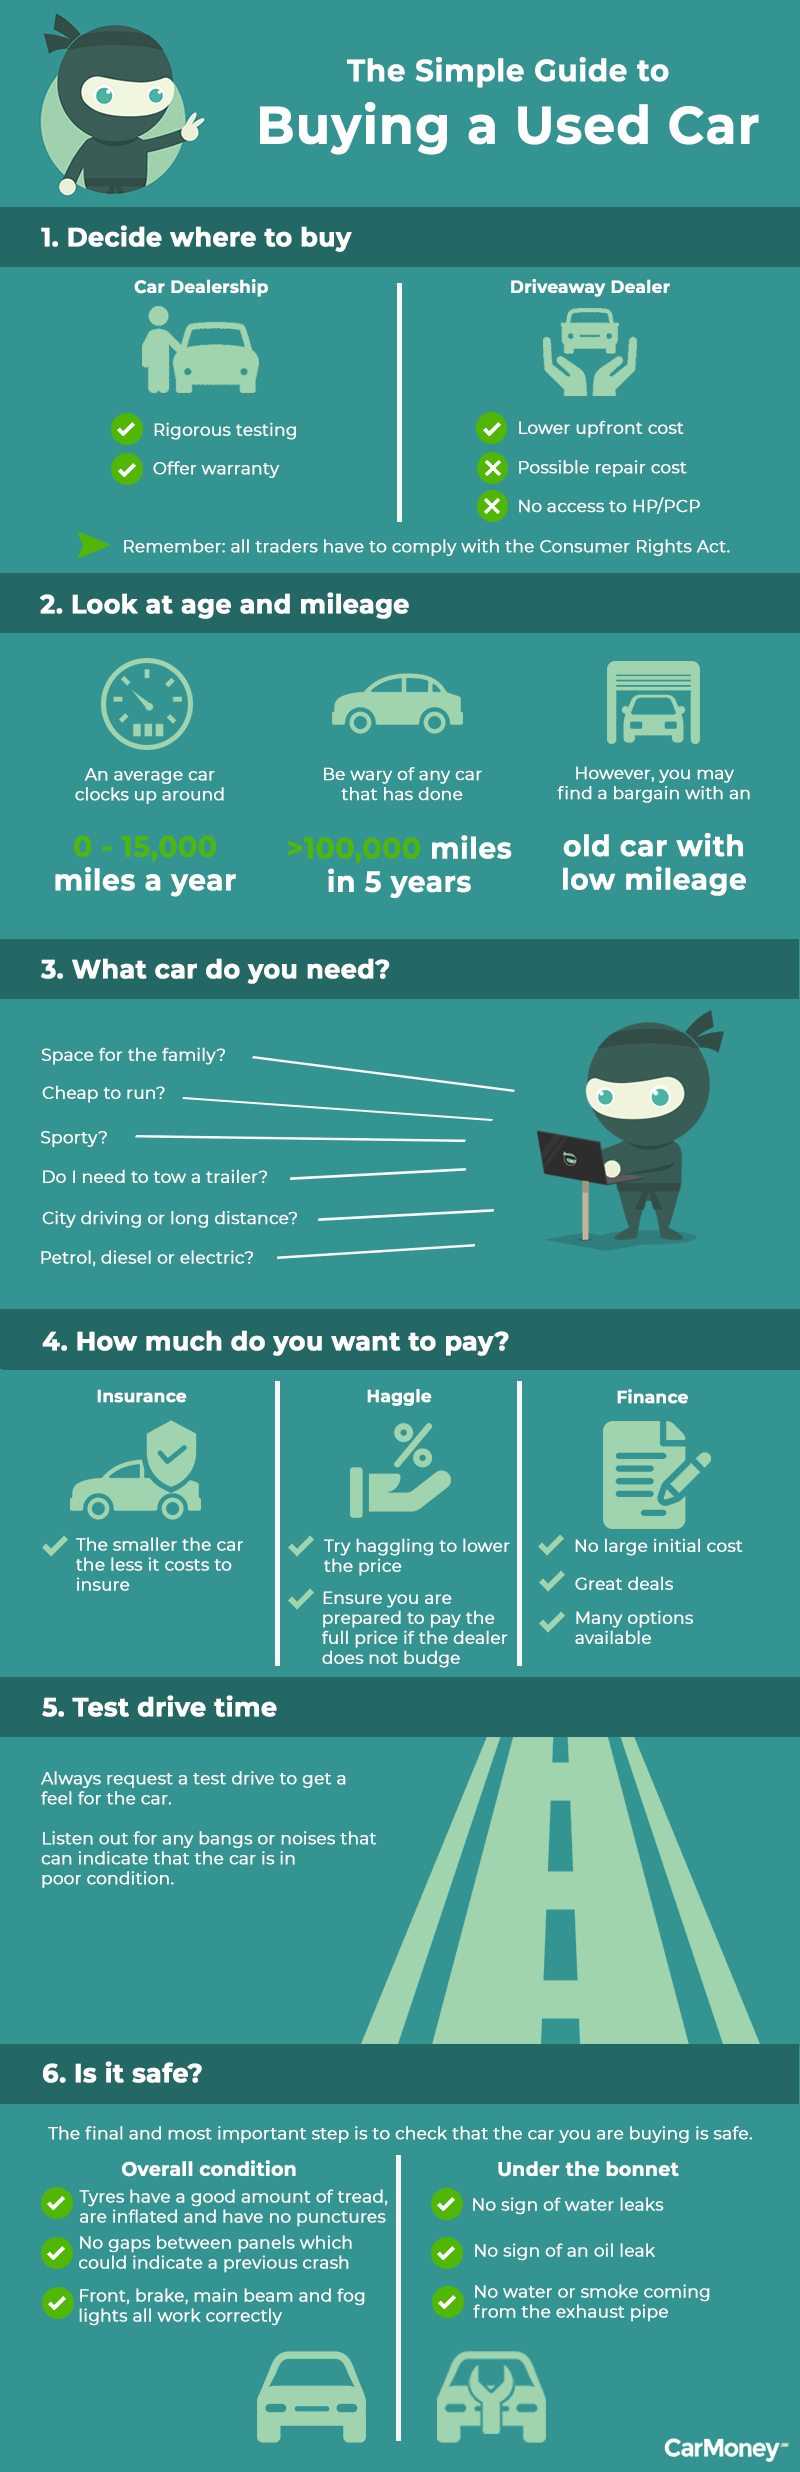 carmoney guide to buying a used car infographic